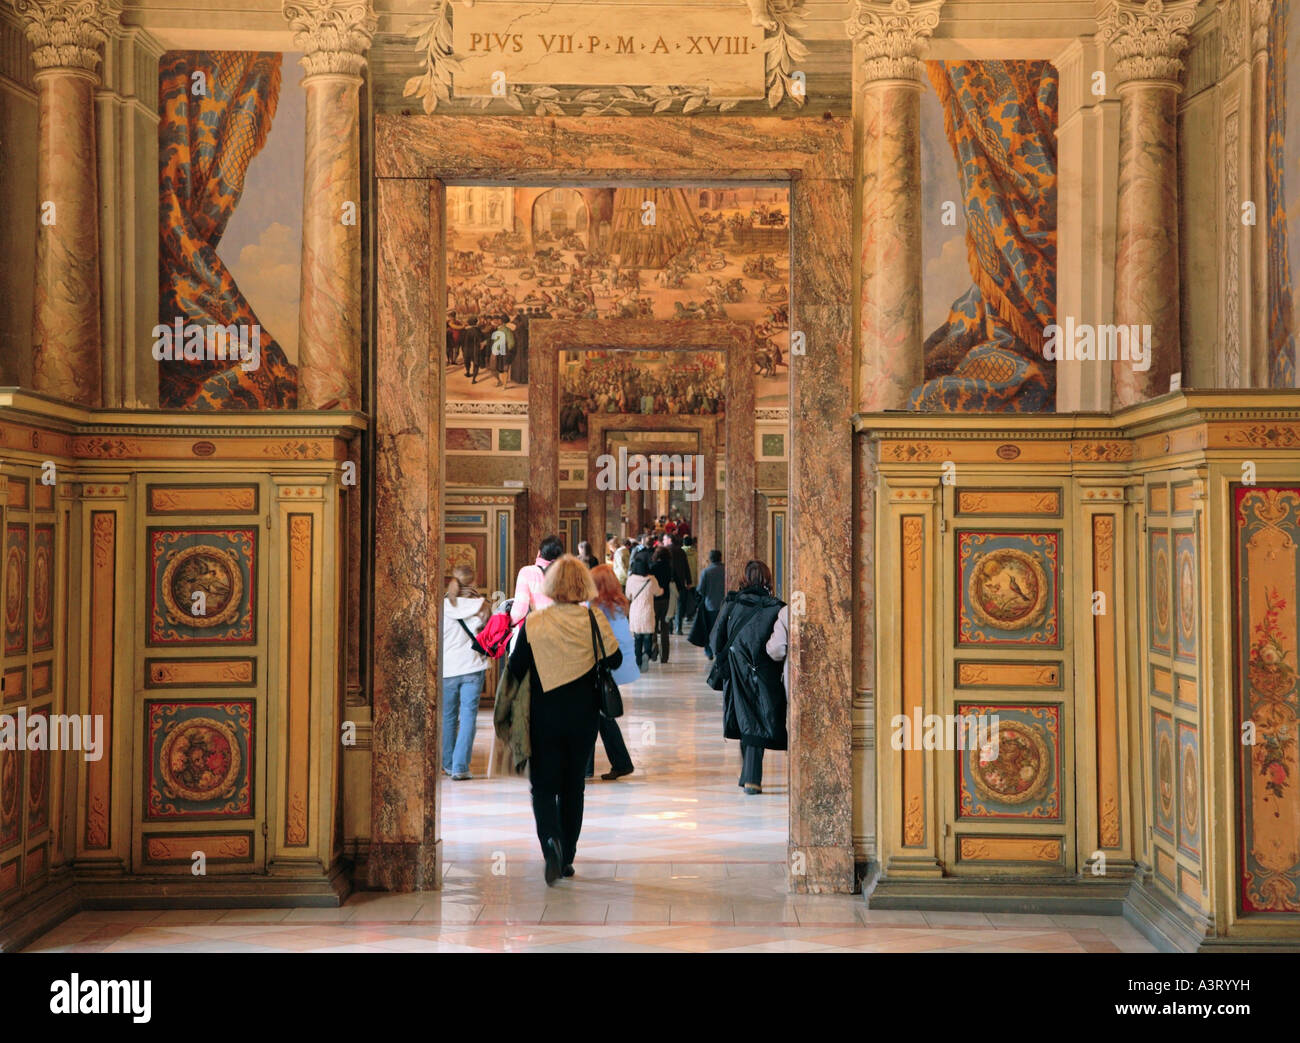 Interior of the Vatican Museum Rome Italy - Stock Image